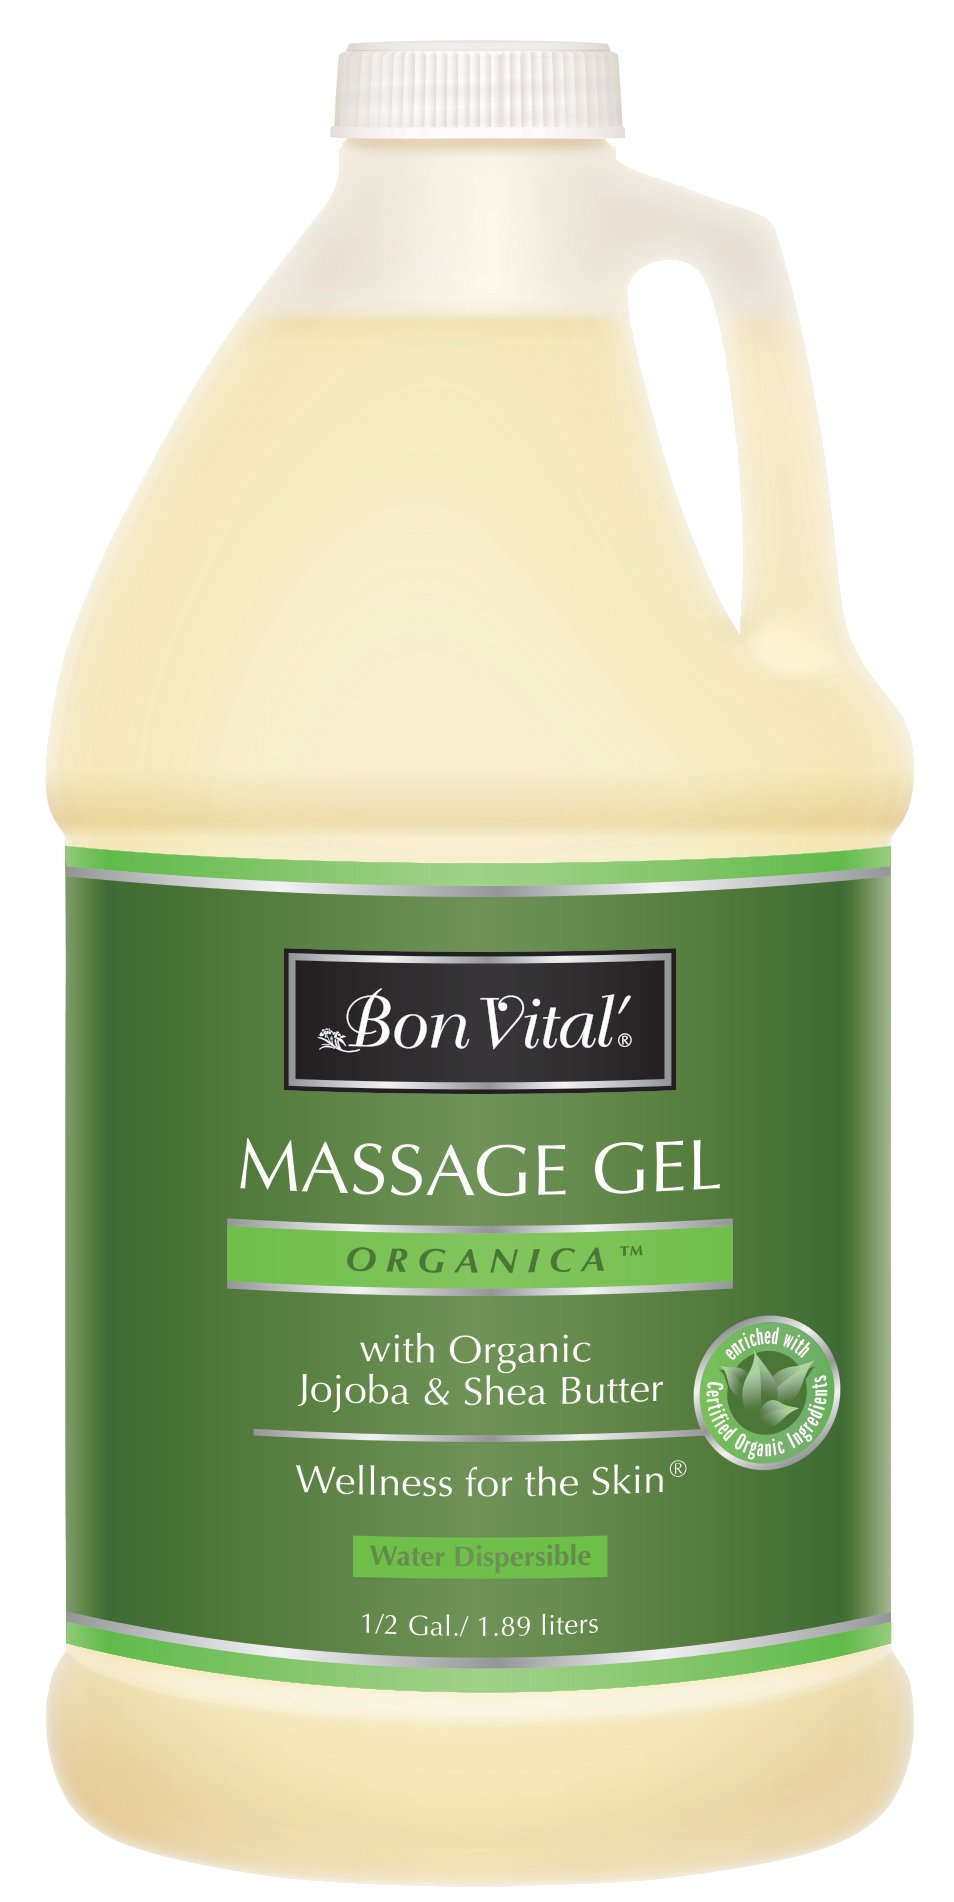 Bon Vital' Organica Massage Gel Made with Certified Organic Ingredients for Earth-Friendly and Relaxing Massage, Moisturizer for Natural Massage that Hydrates and Softens Skin, 1/2 Gal Bottle